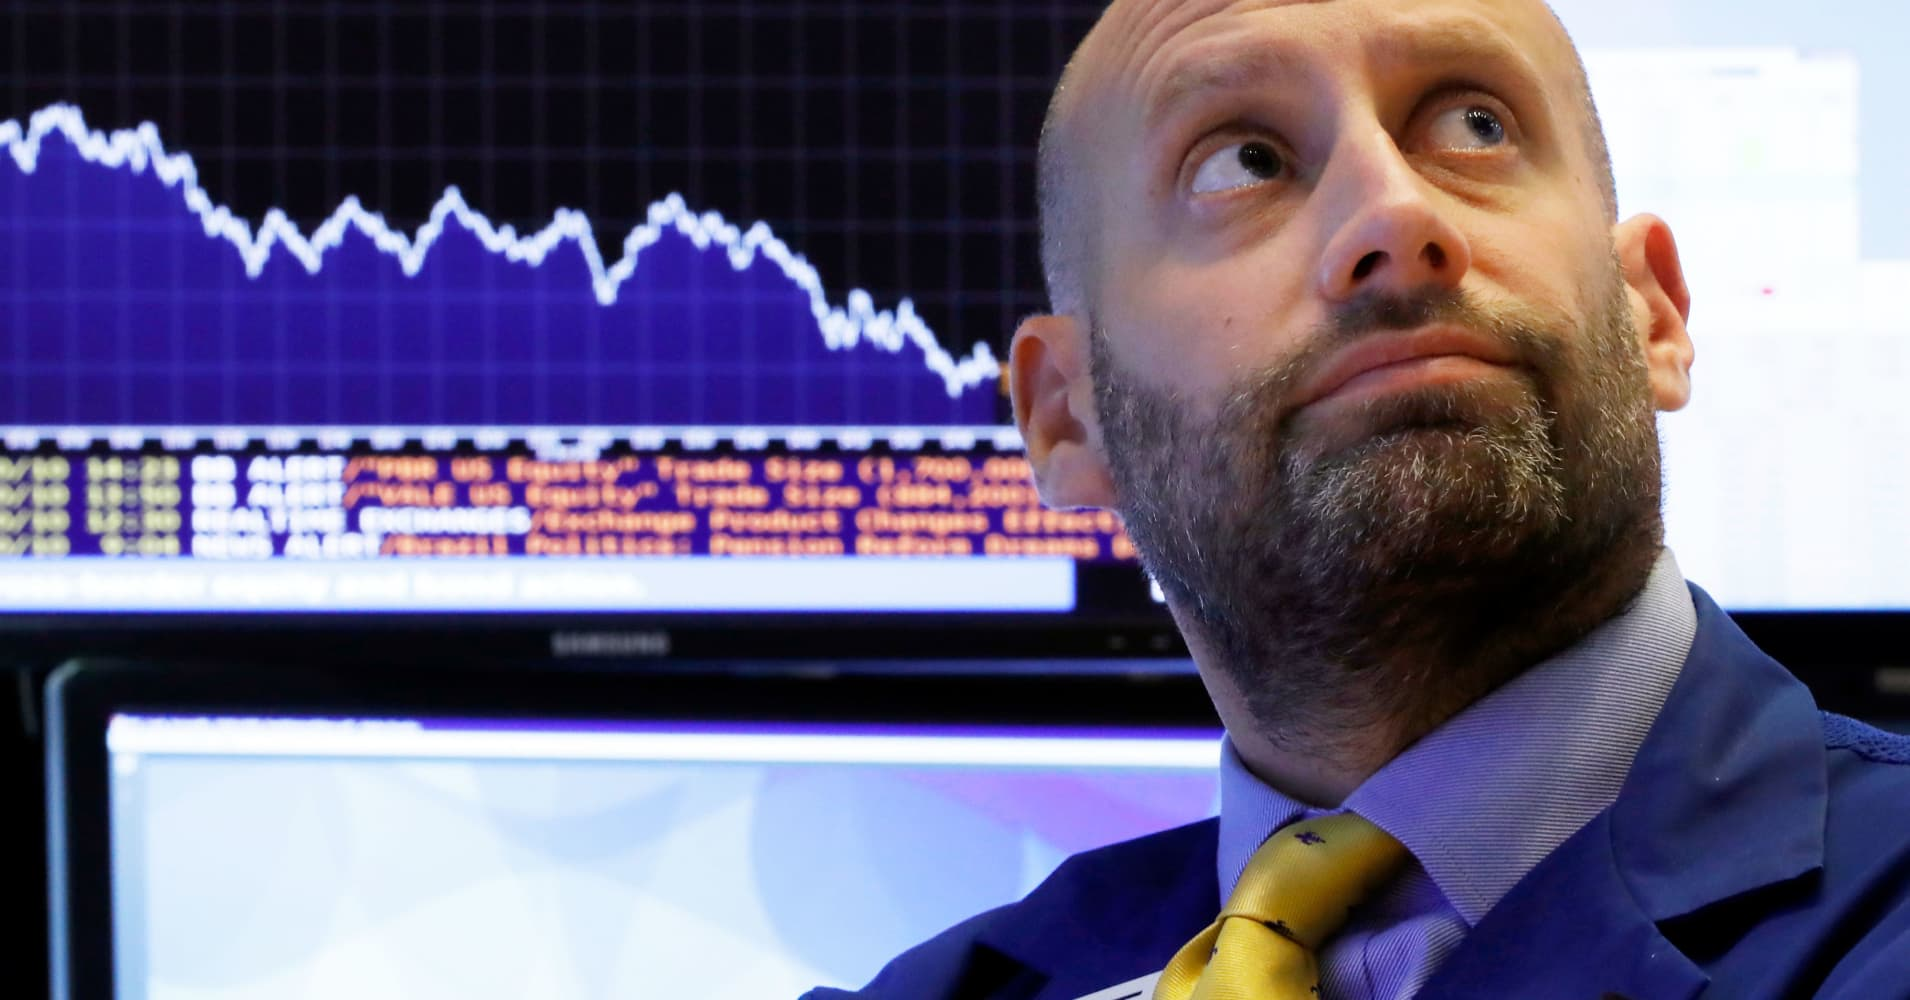 Dow erases gains for the year, tumbles 600 points as stocks extend October swoon